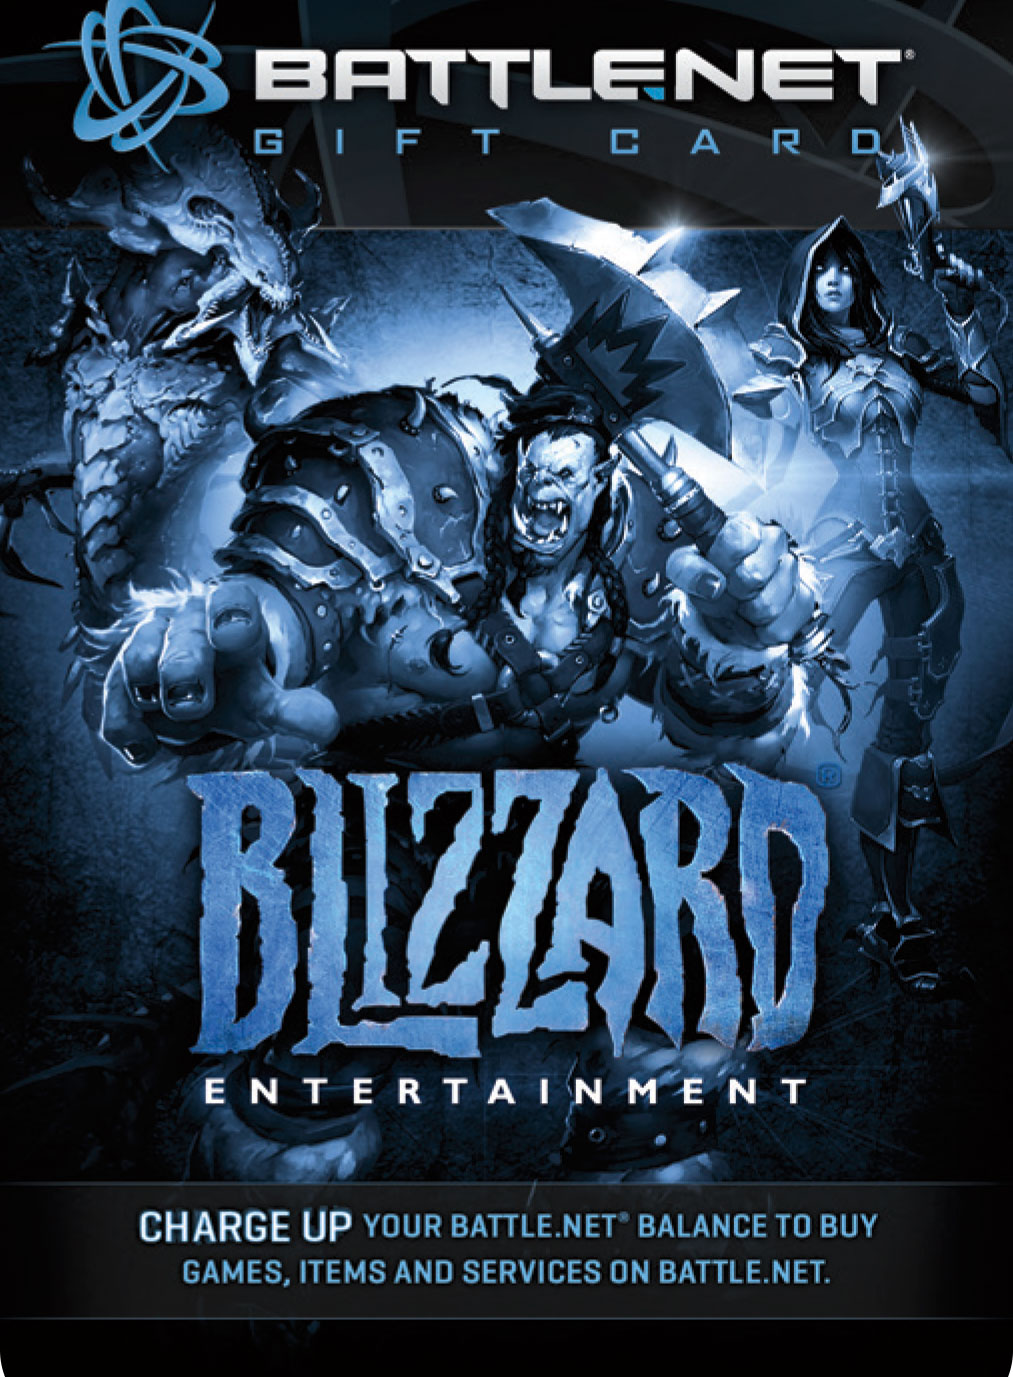 $20 Battle.net Store Gift Card Balance - Blizzard Entertainment [Digital Code] [Online Game Code] (Best World War 2 Computer Games)